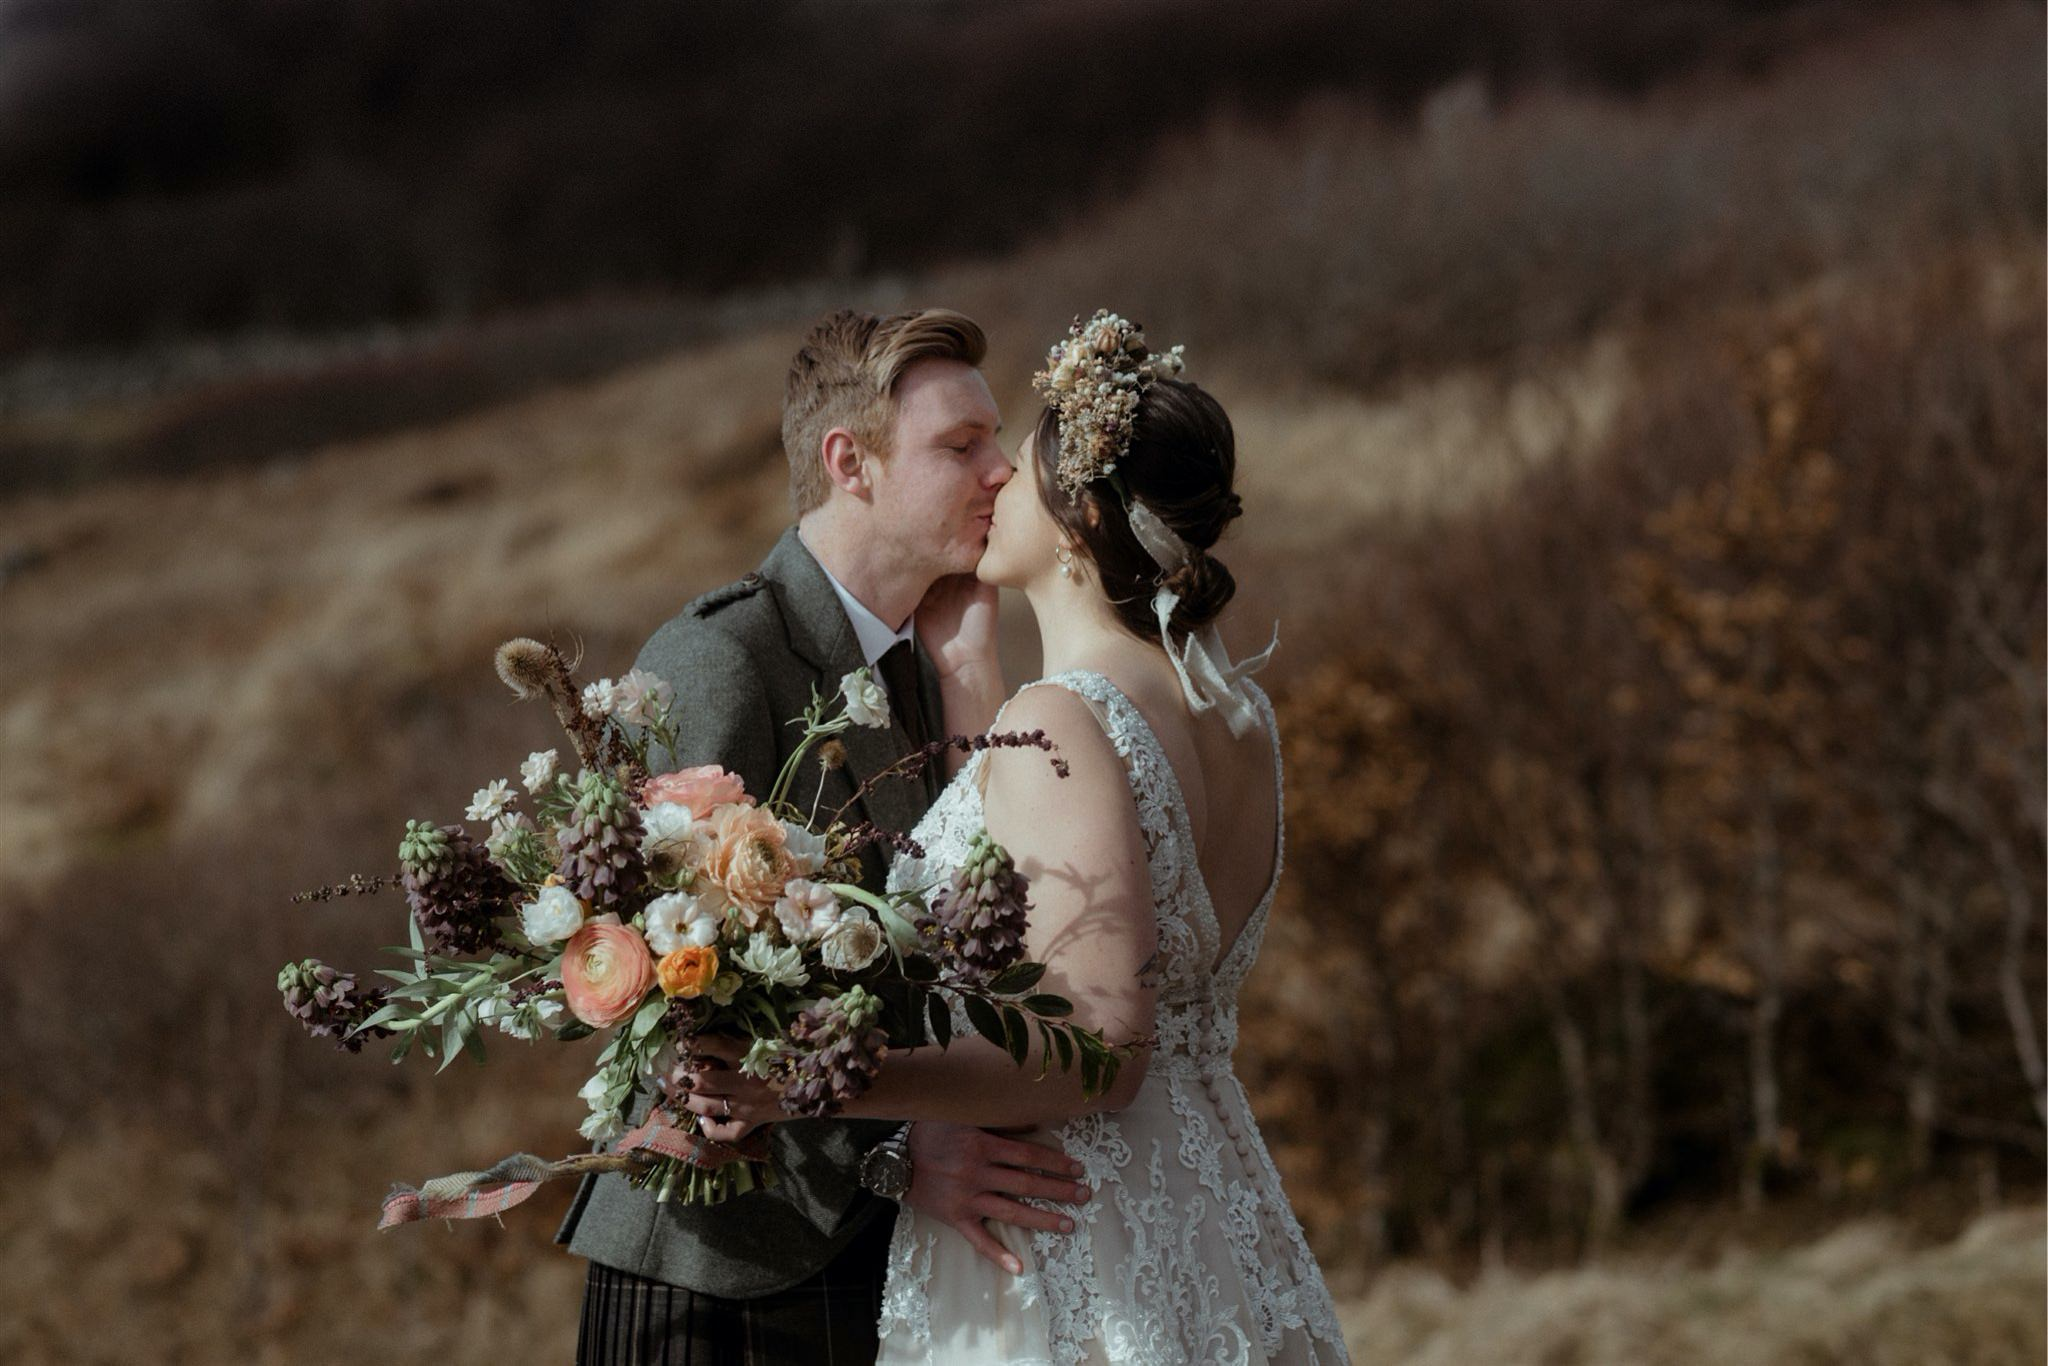 Bride with flower bouquet and groom kiss during their elopement wedding in Assynt, Scotland